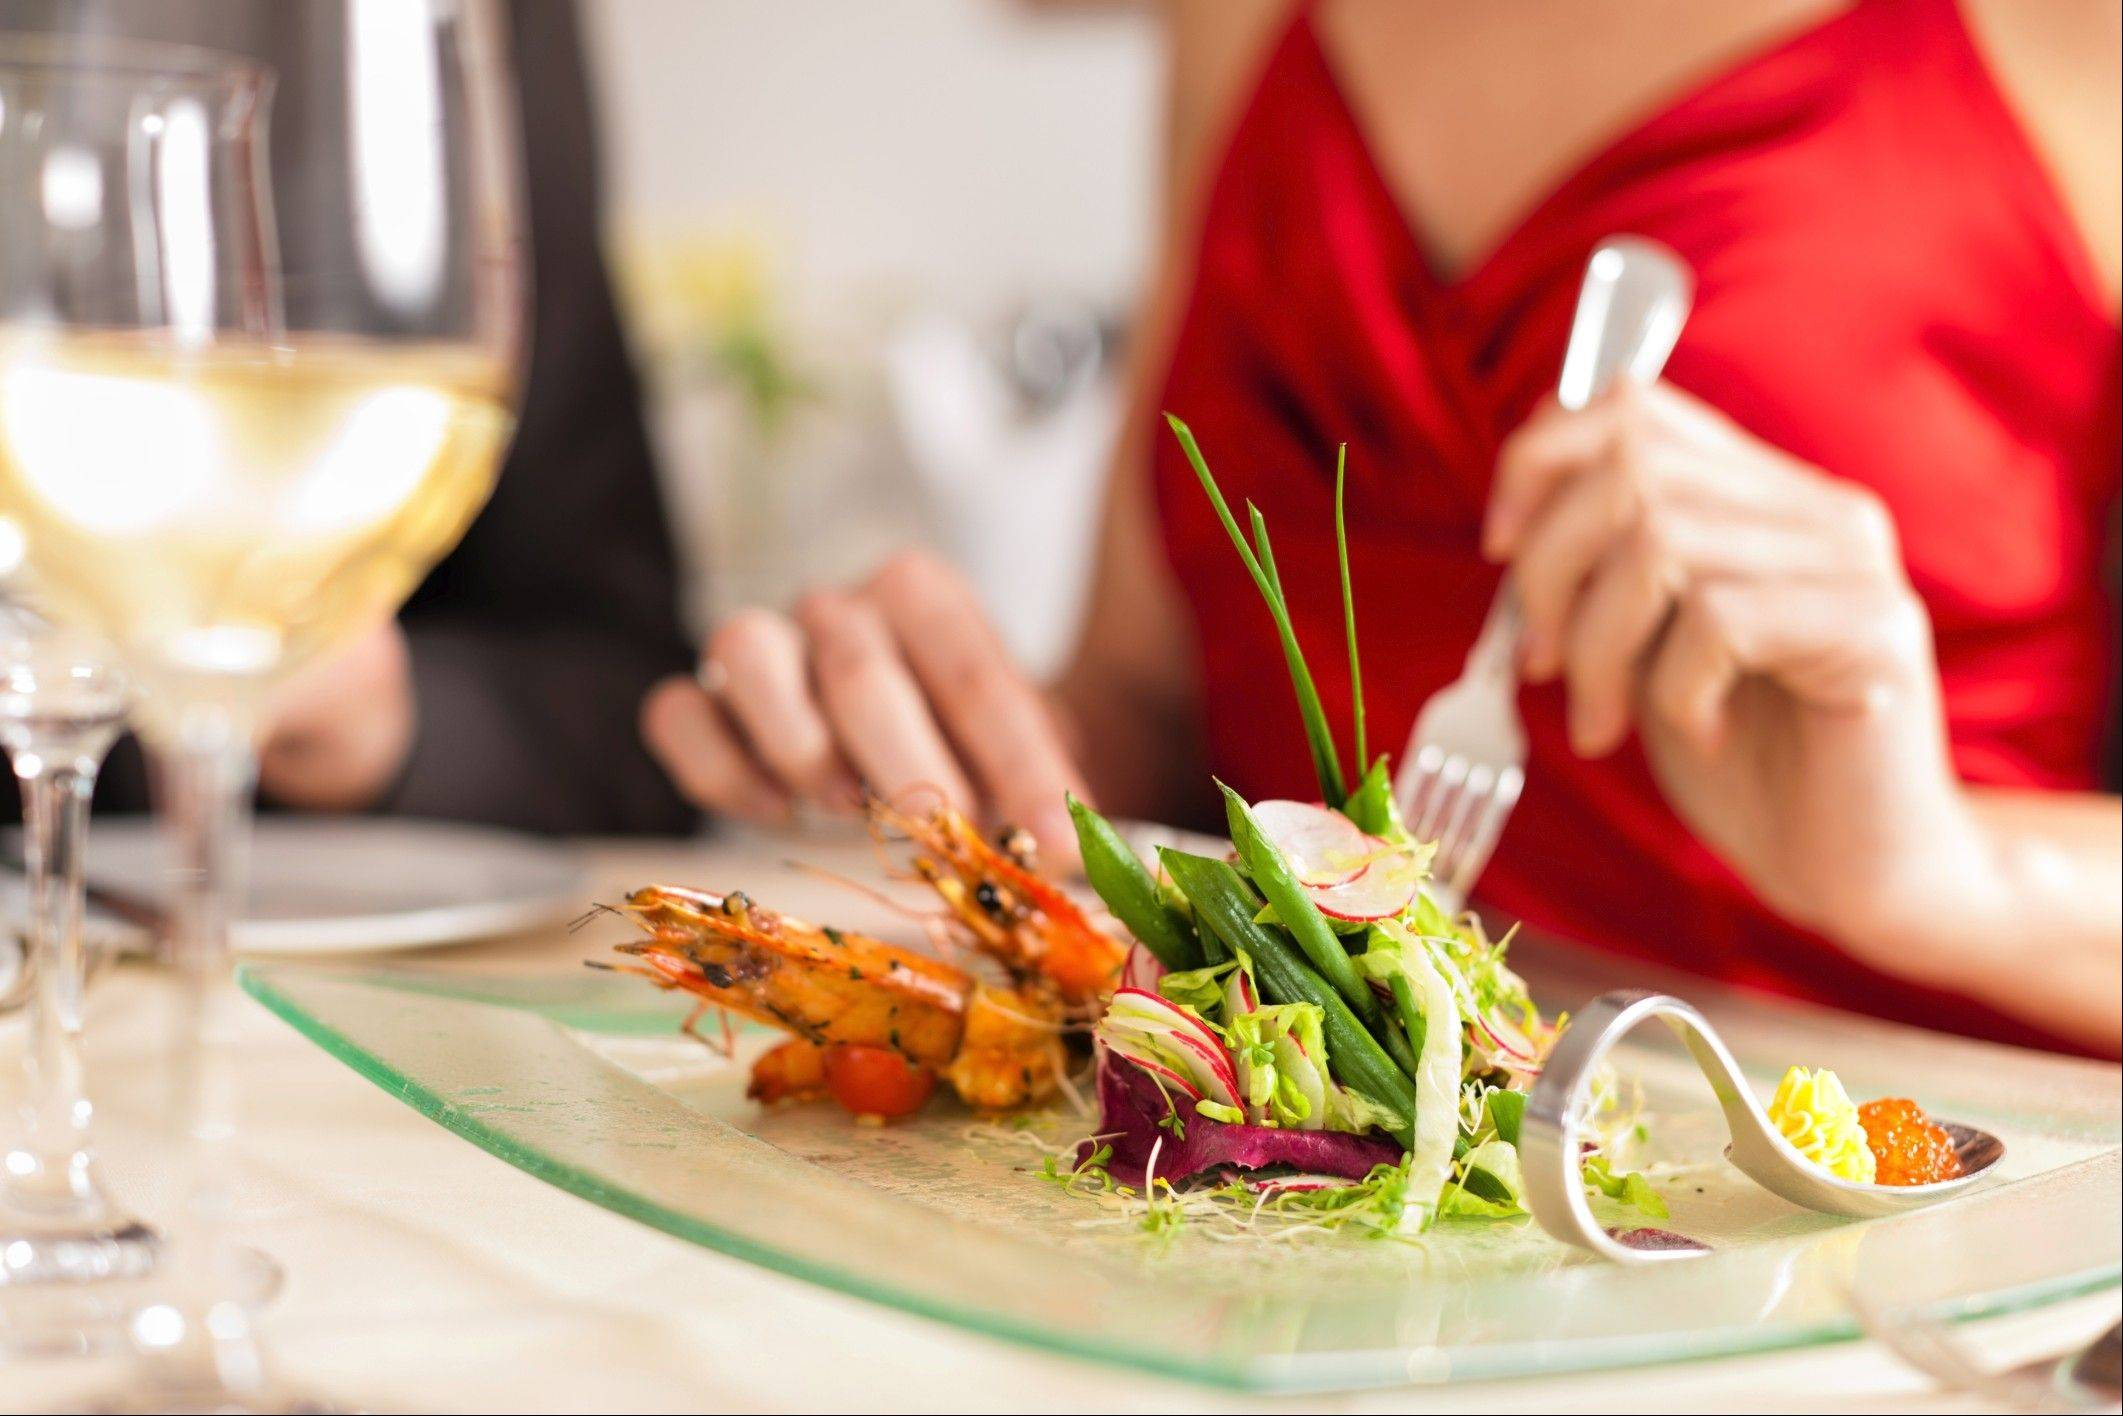 Eating out can be tough when you�re on a diet, but some tips can help you survive it.